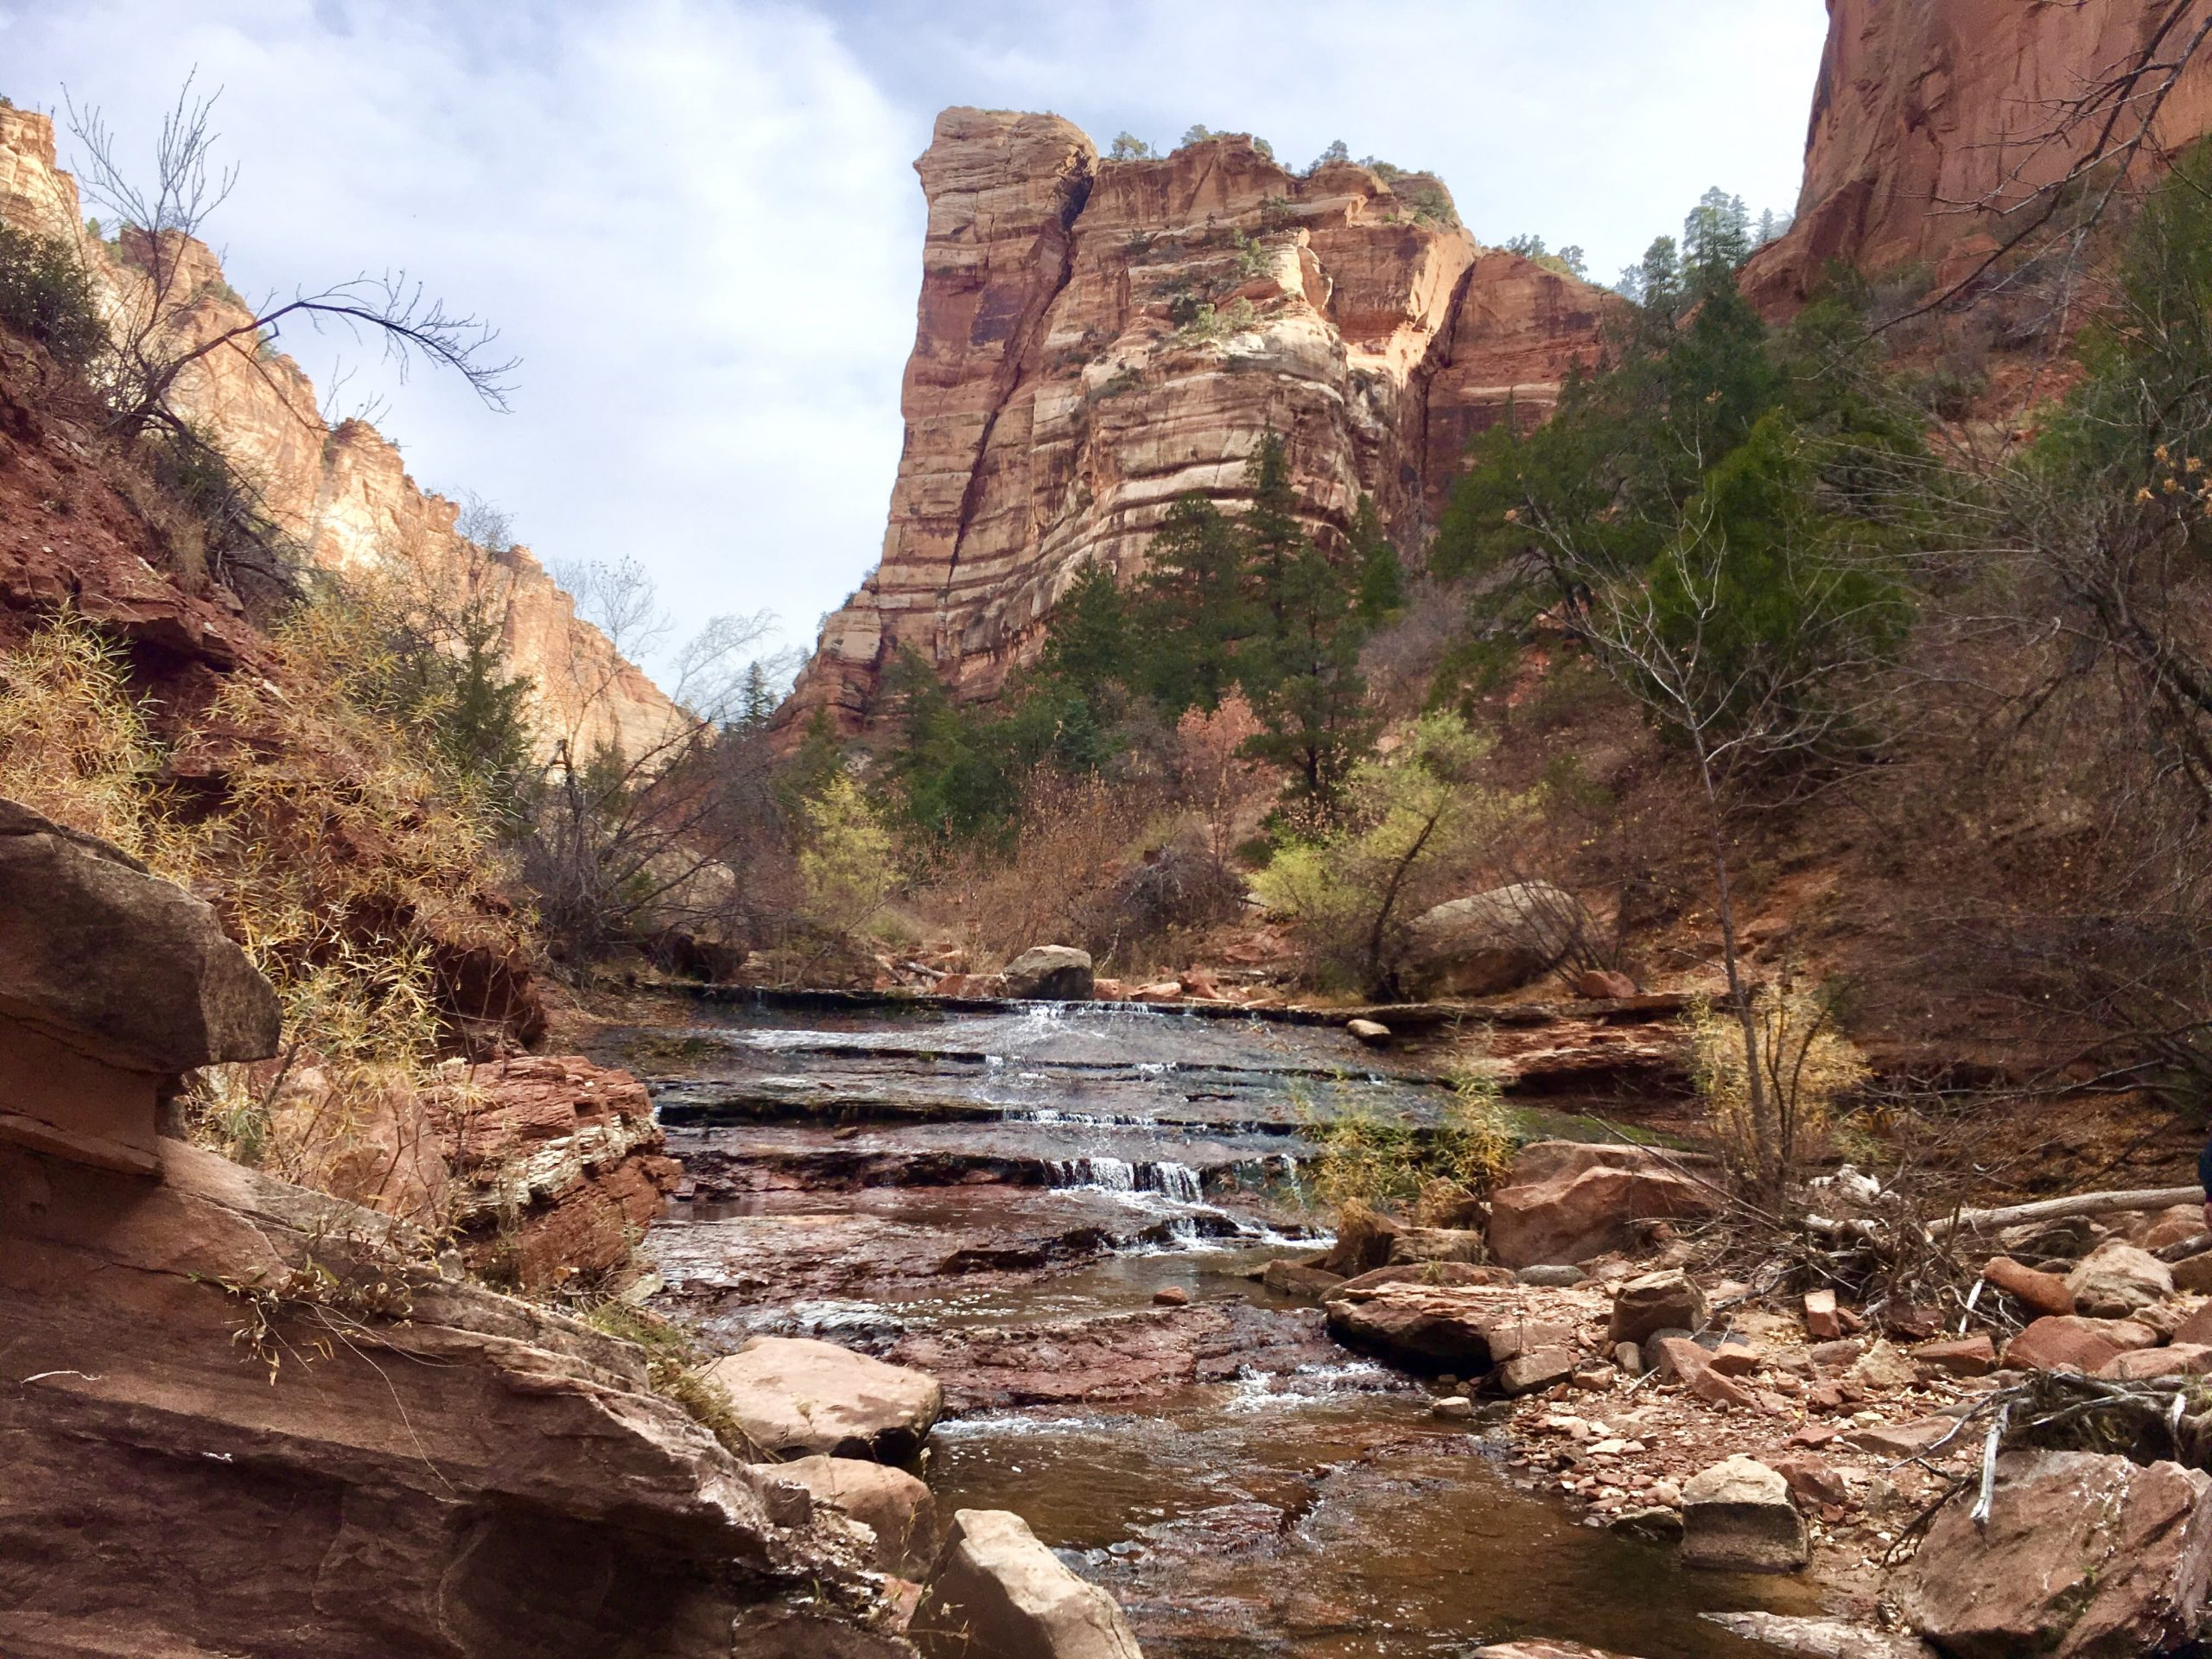 The Subway Hike at Zion National Park